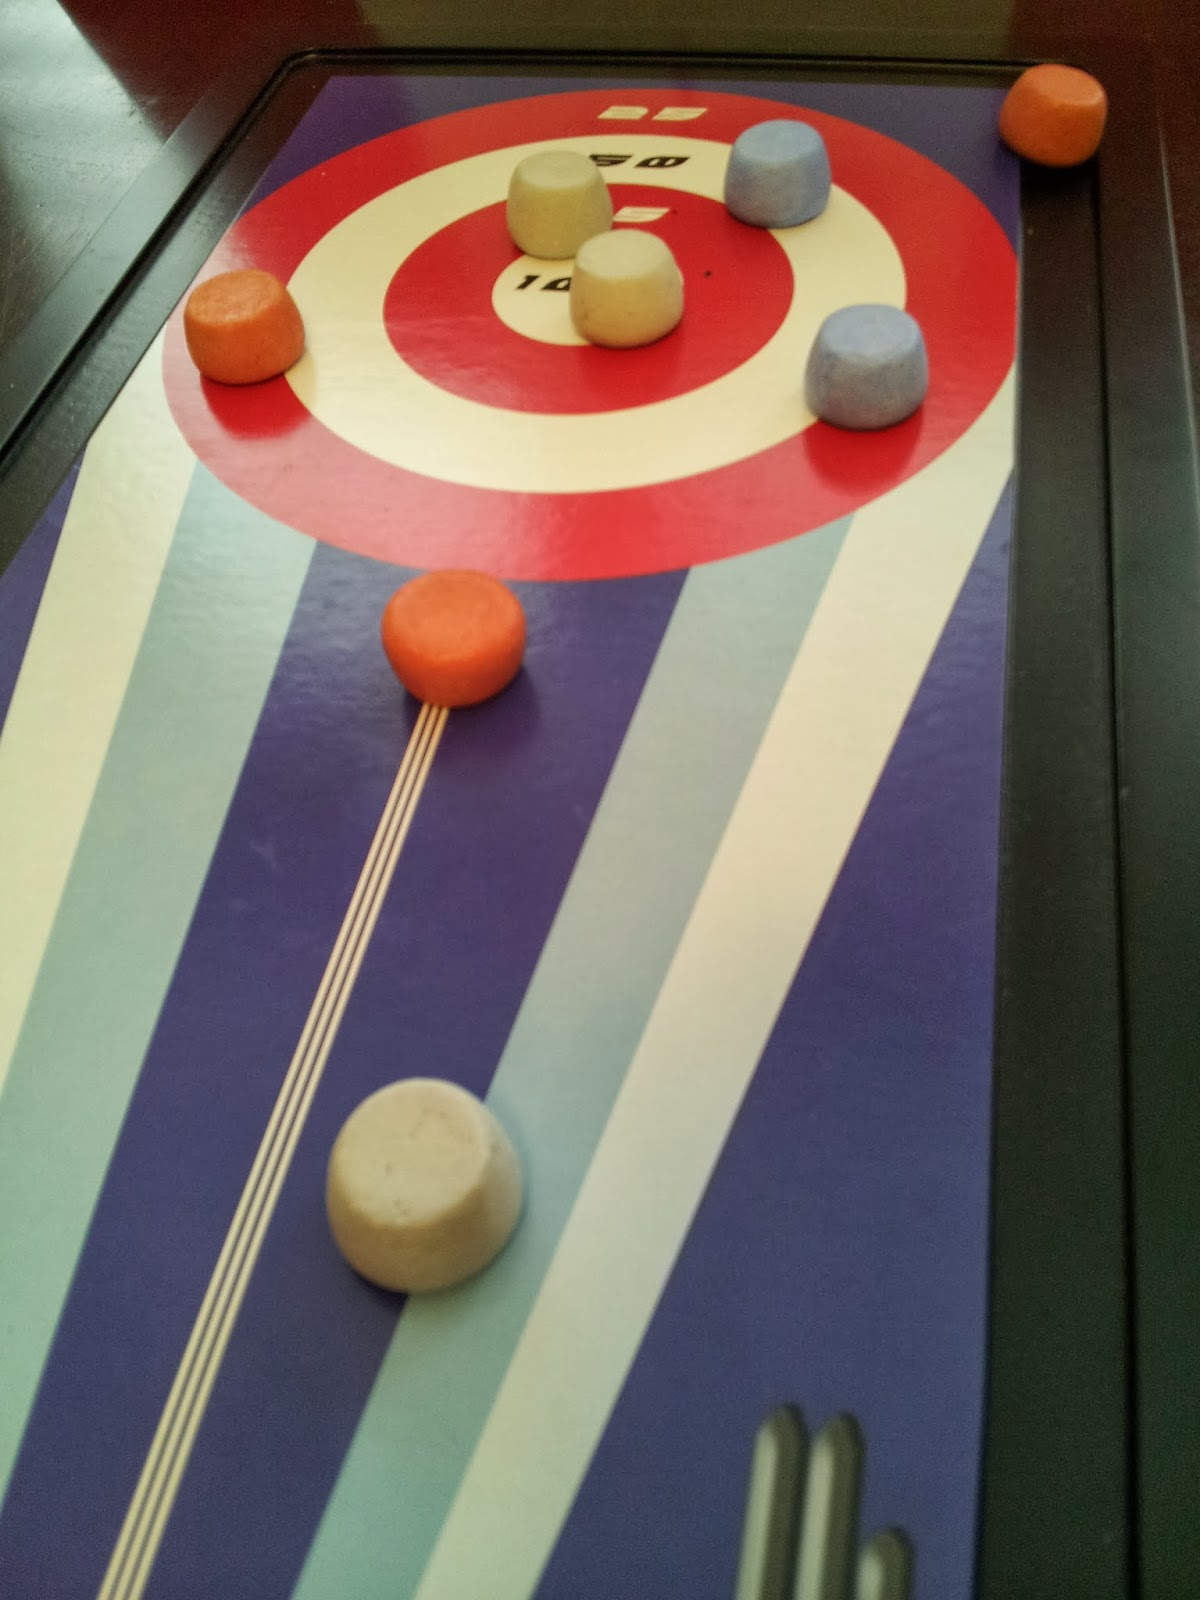 tabletop shuffleboard, winter activities, Olympics at home, kids, sports